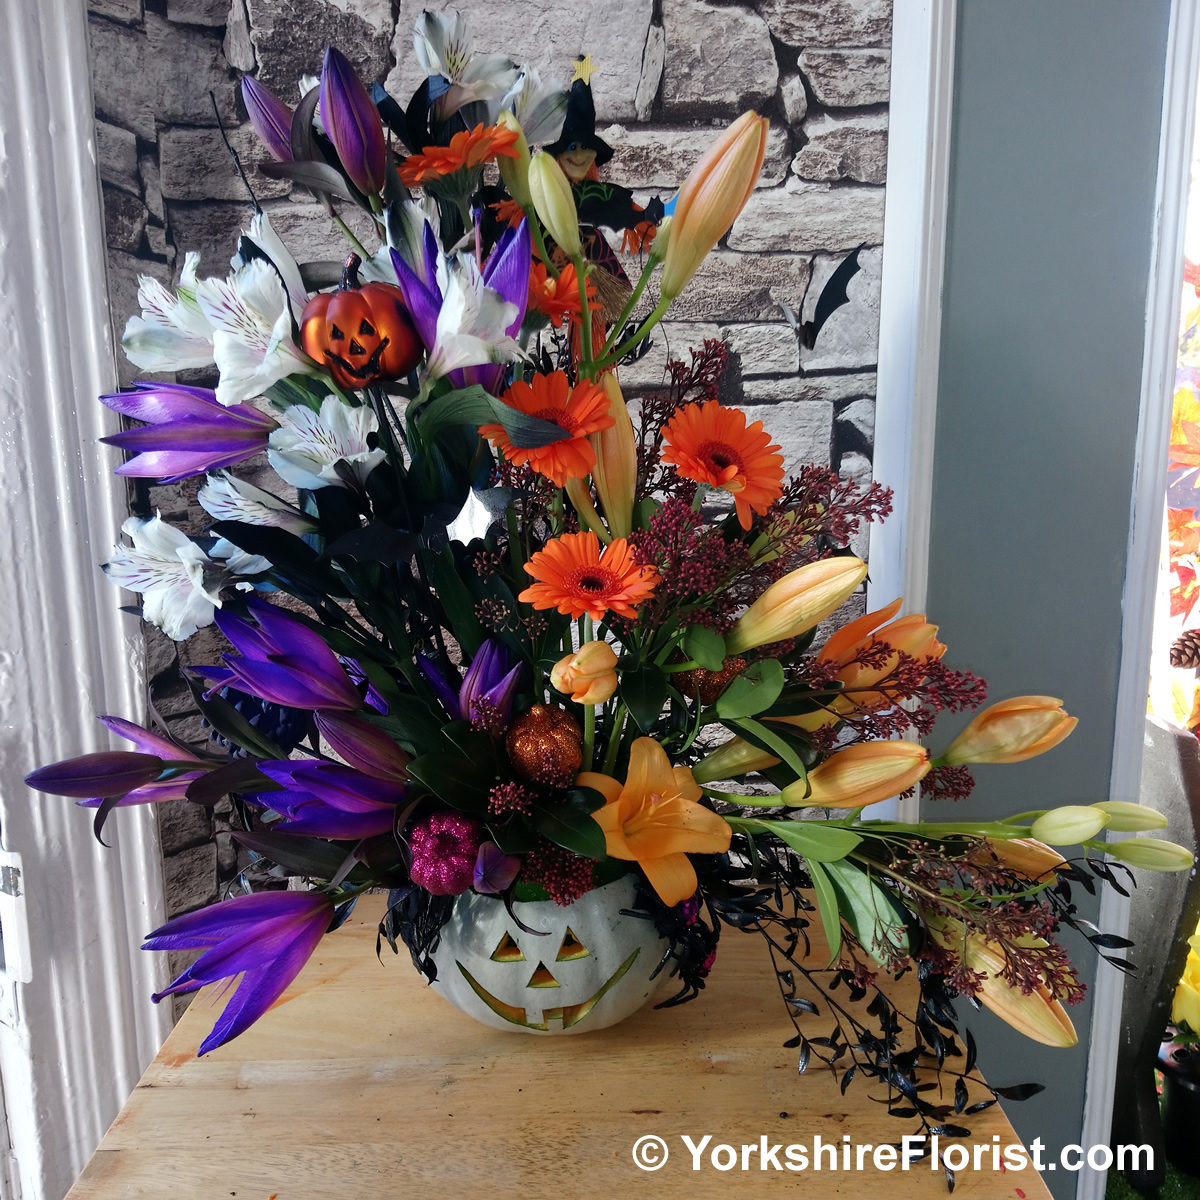 Yorkshire Florist Handmade Holly Wreaths Festive Florals Bouquets Candles And Baskets